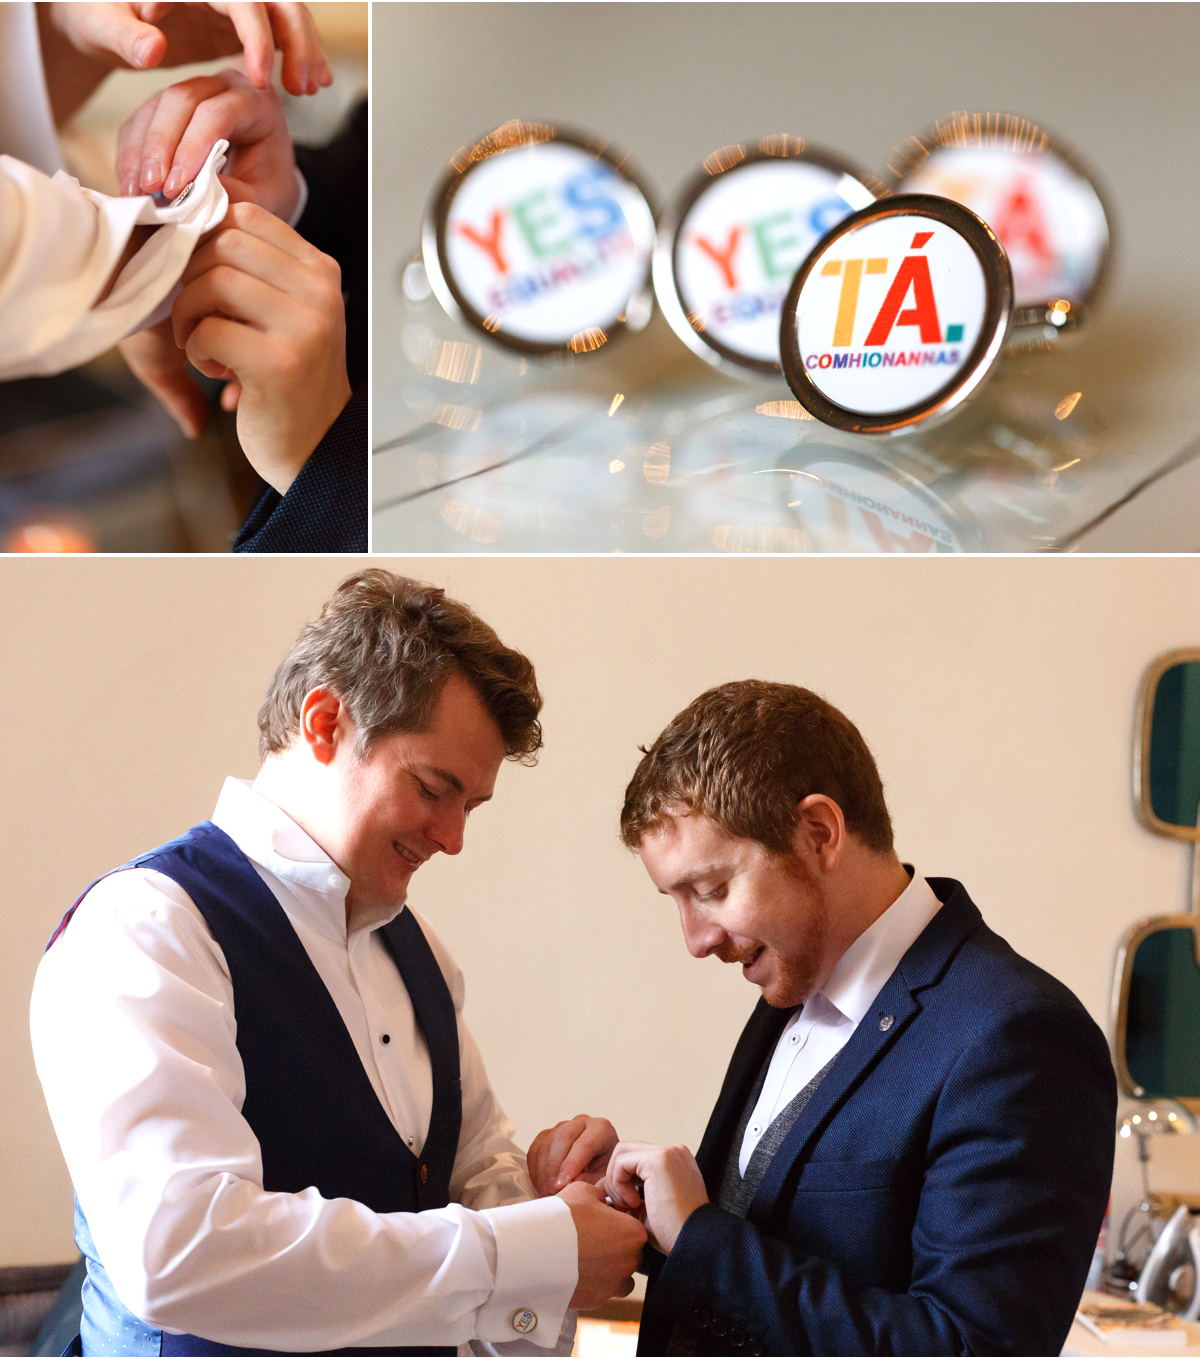 gay wedding cuff links